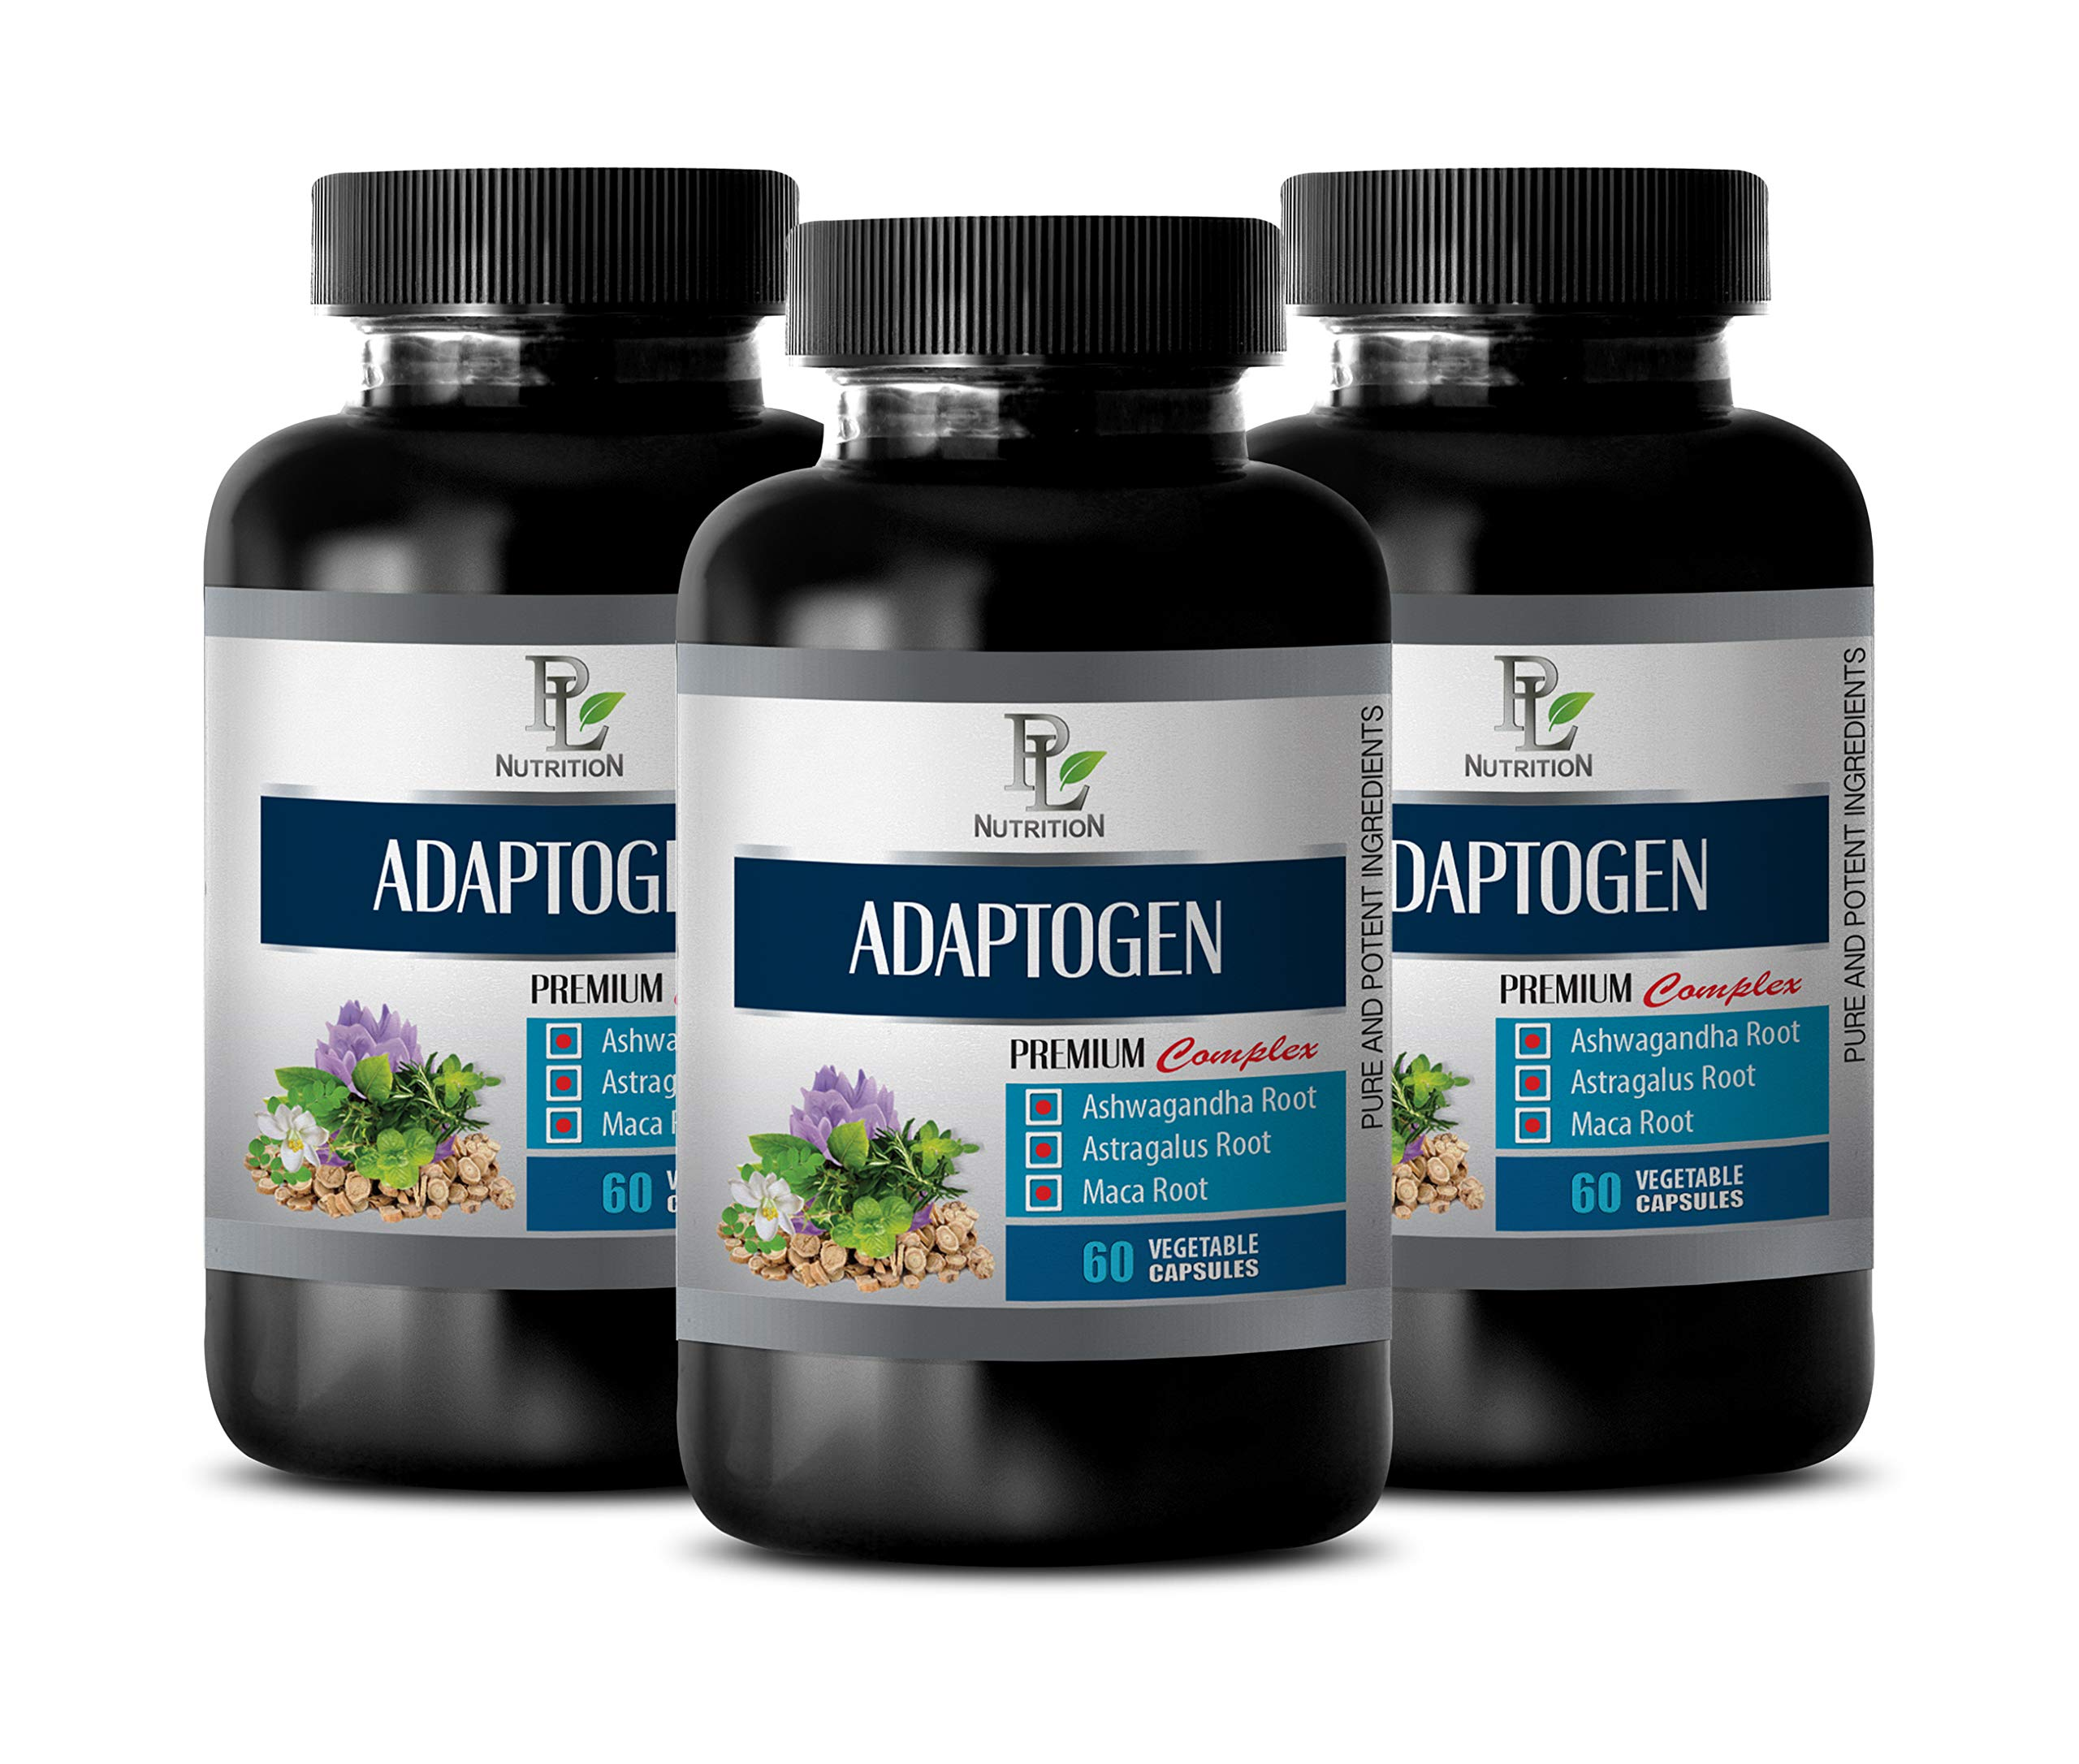 Brain Support Supplement Improve Memory Focus and Brain Function - ADAPTOGEN Premium Complex - Pure and Potent Ingredients - maca Root Capsules for Fertility - 3 Bottles 180 Vegetable Capsules